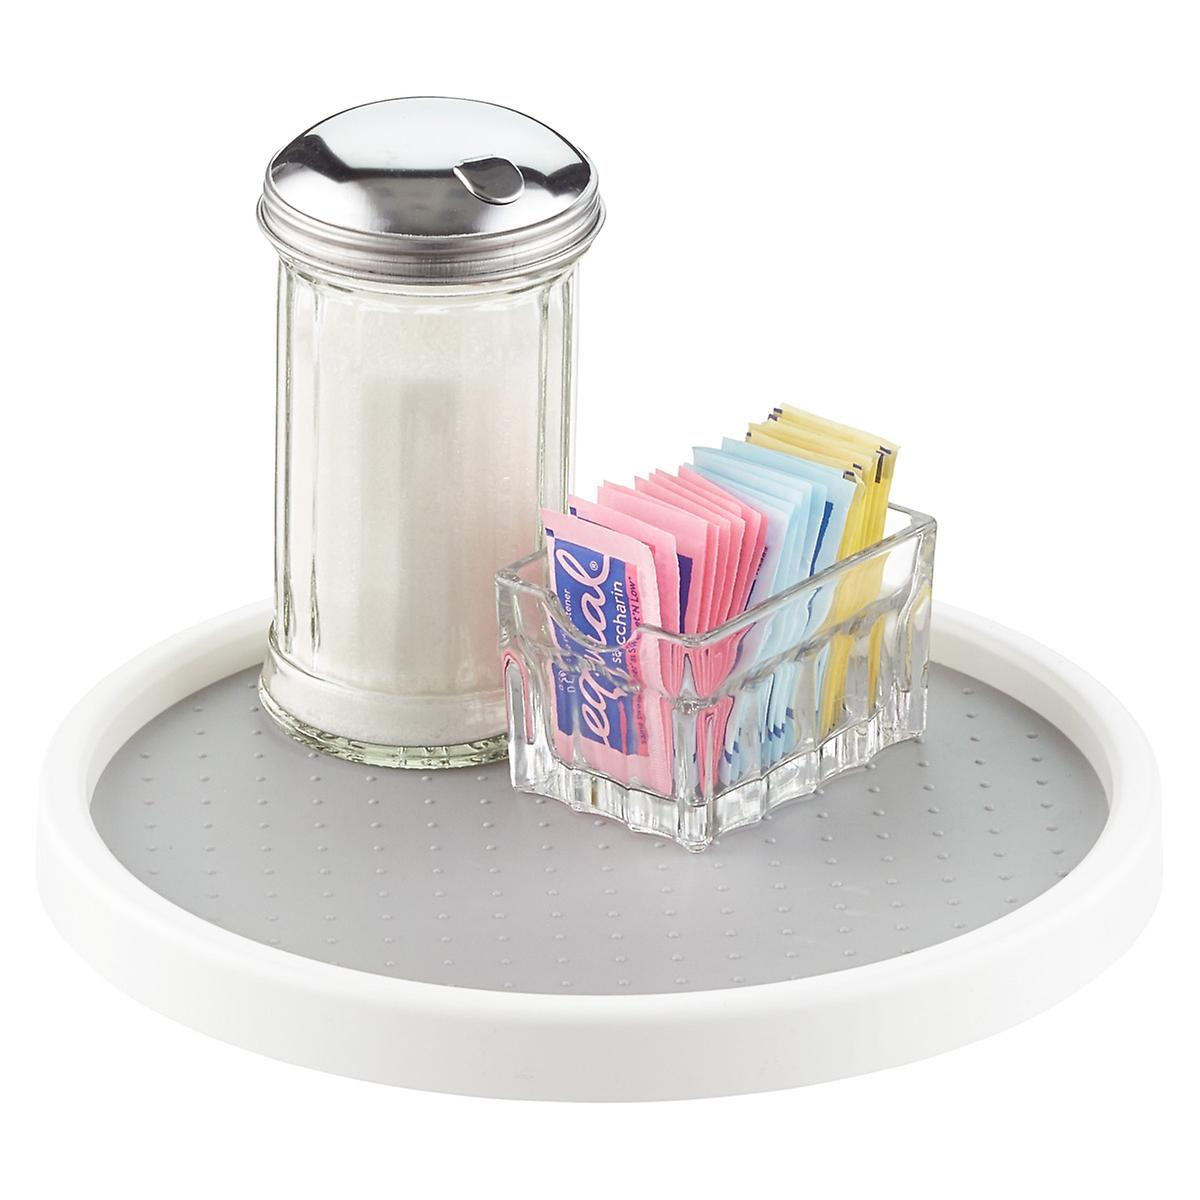 madesmart white lazy susan the container store madesmart white lazy susan